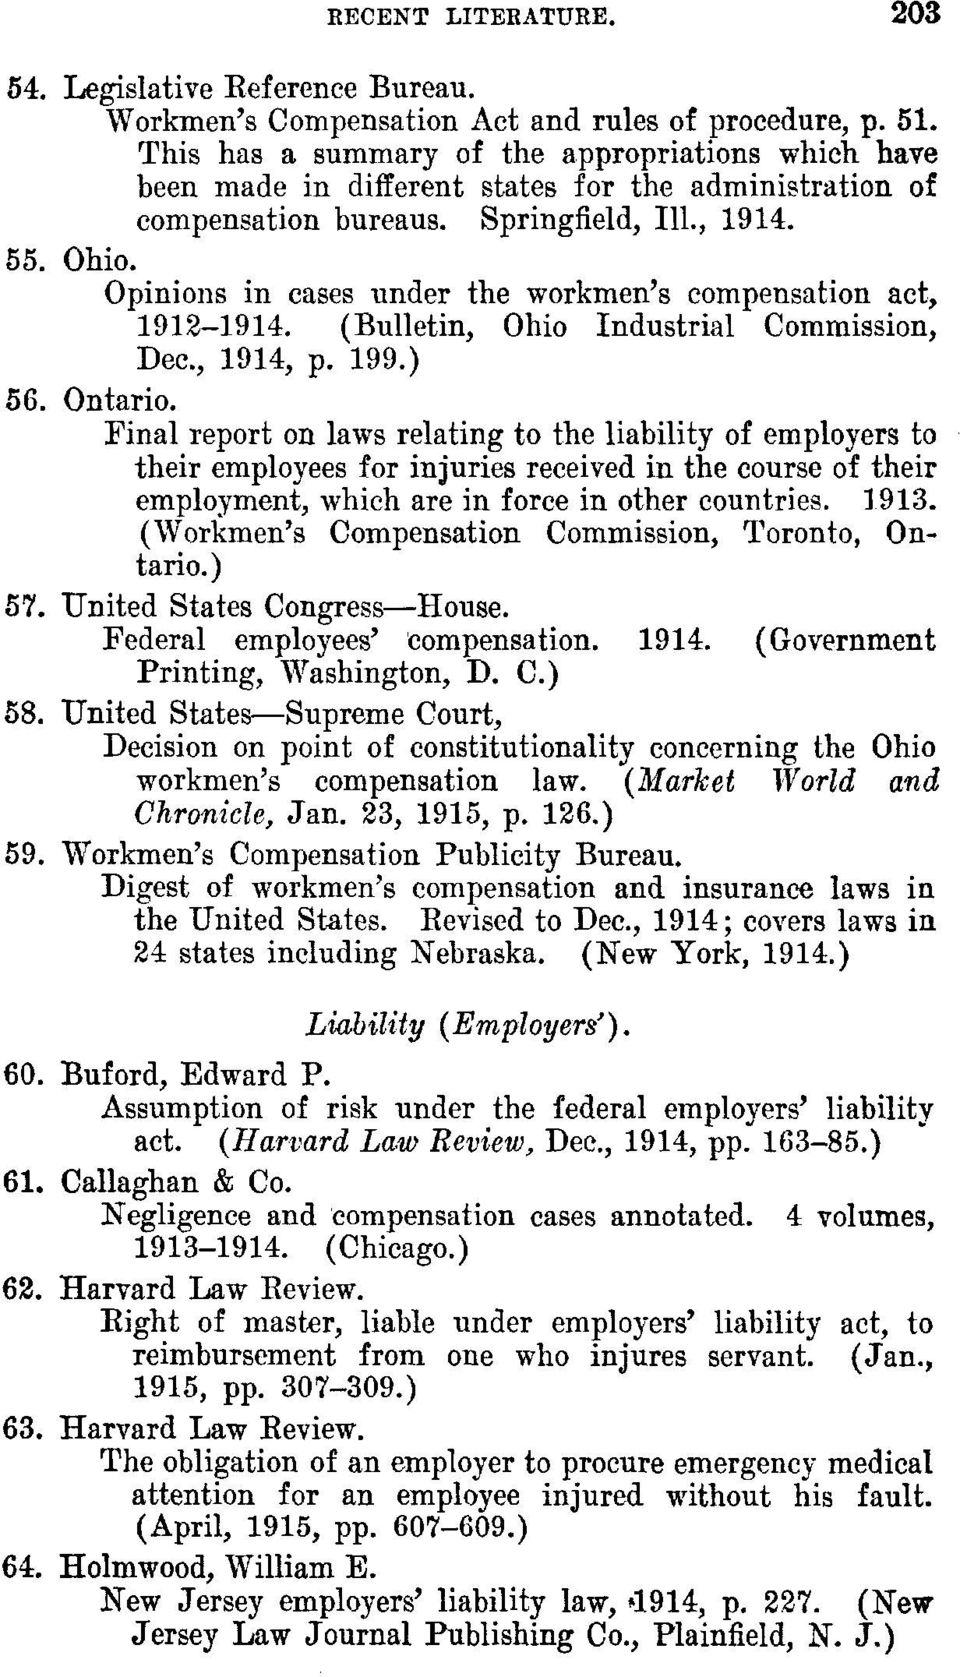 Opinions in cases under the workmen's compensation act, 1912-1914. (Bulletin, Ohio Industrial Commission, Dec., 1914, p. 199.) 56. Ontario.